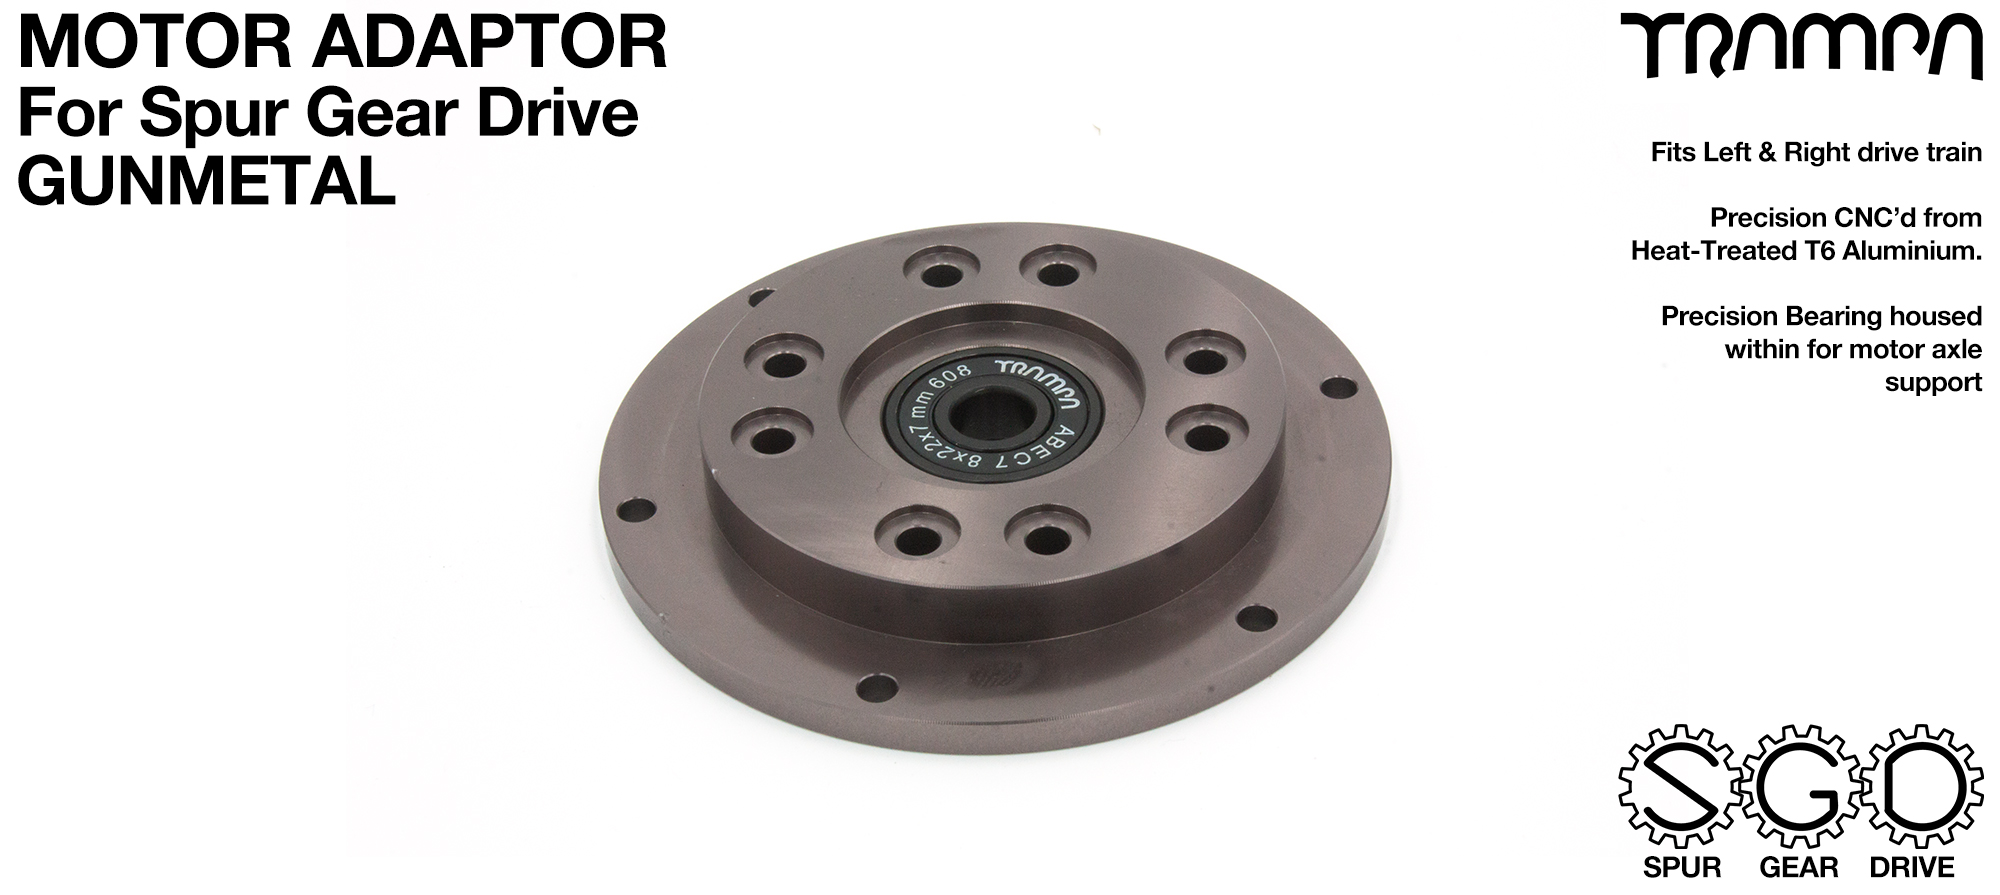 PINK Motor Adapter plate